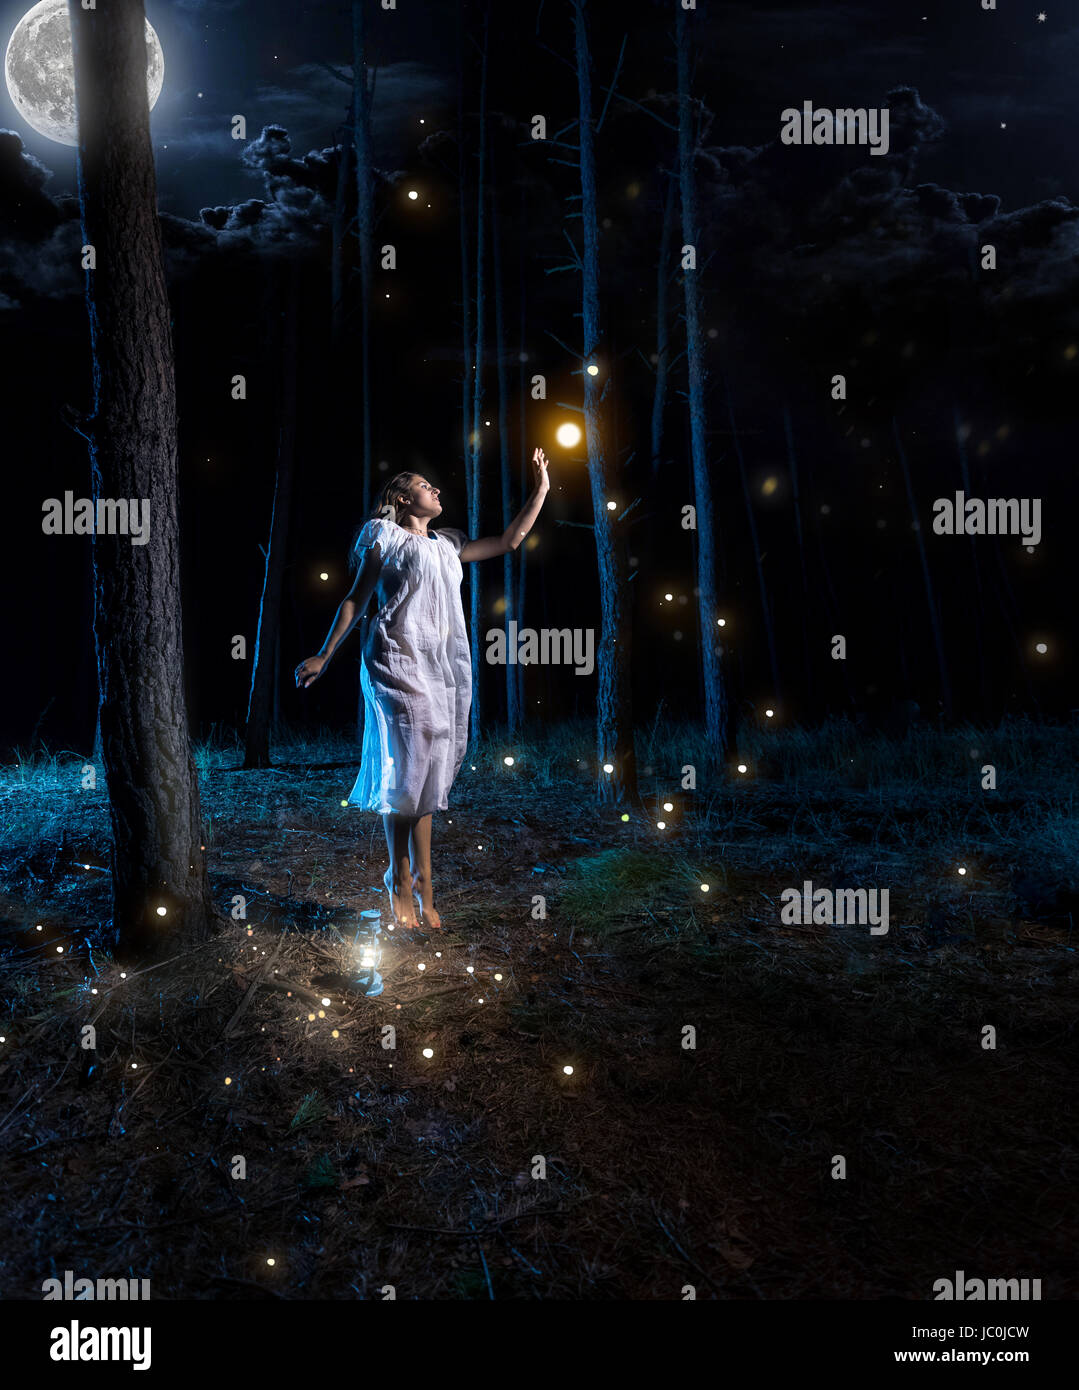 Evening Wallpaper With Quotes Lost Young Woman At Night Forest With Full Moon Jumping